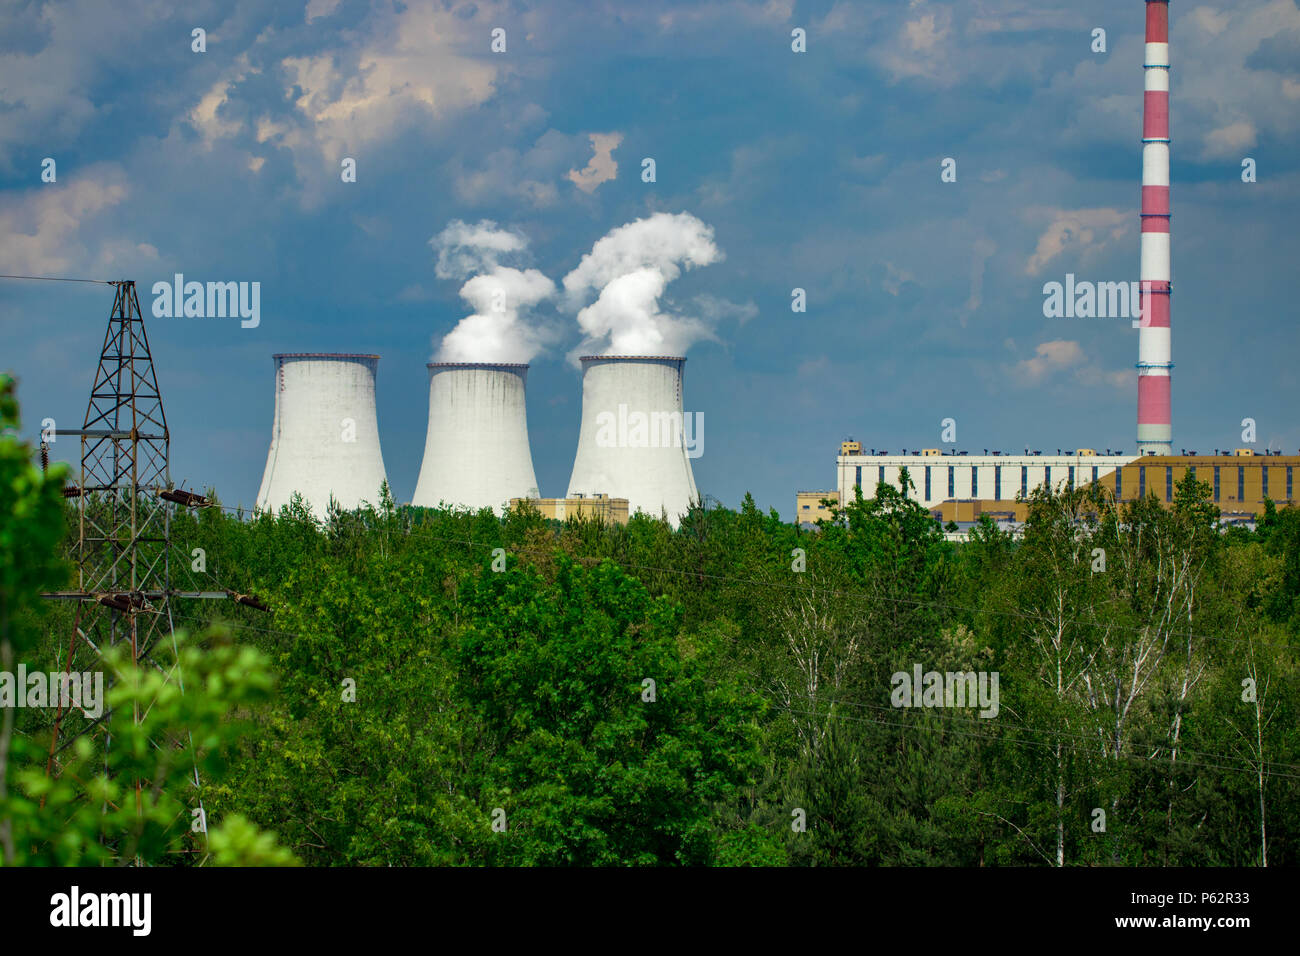 Cooling tower of nuclear power plant Poland. - Stock Image